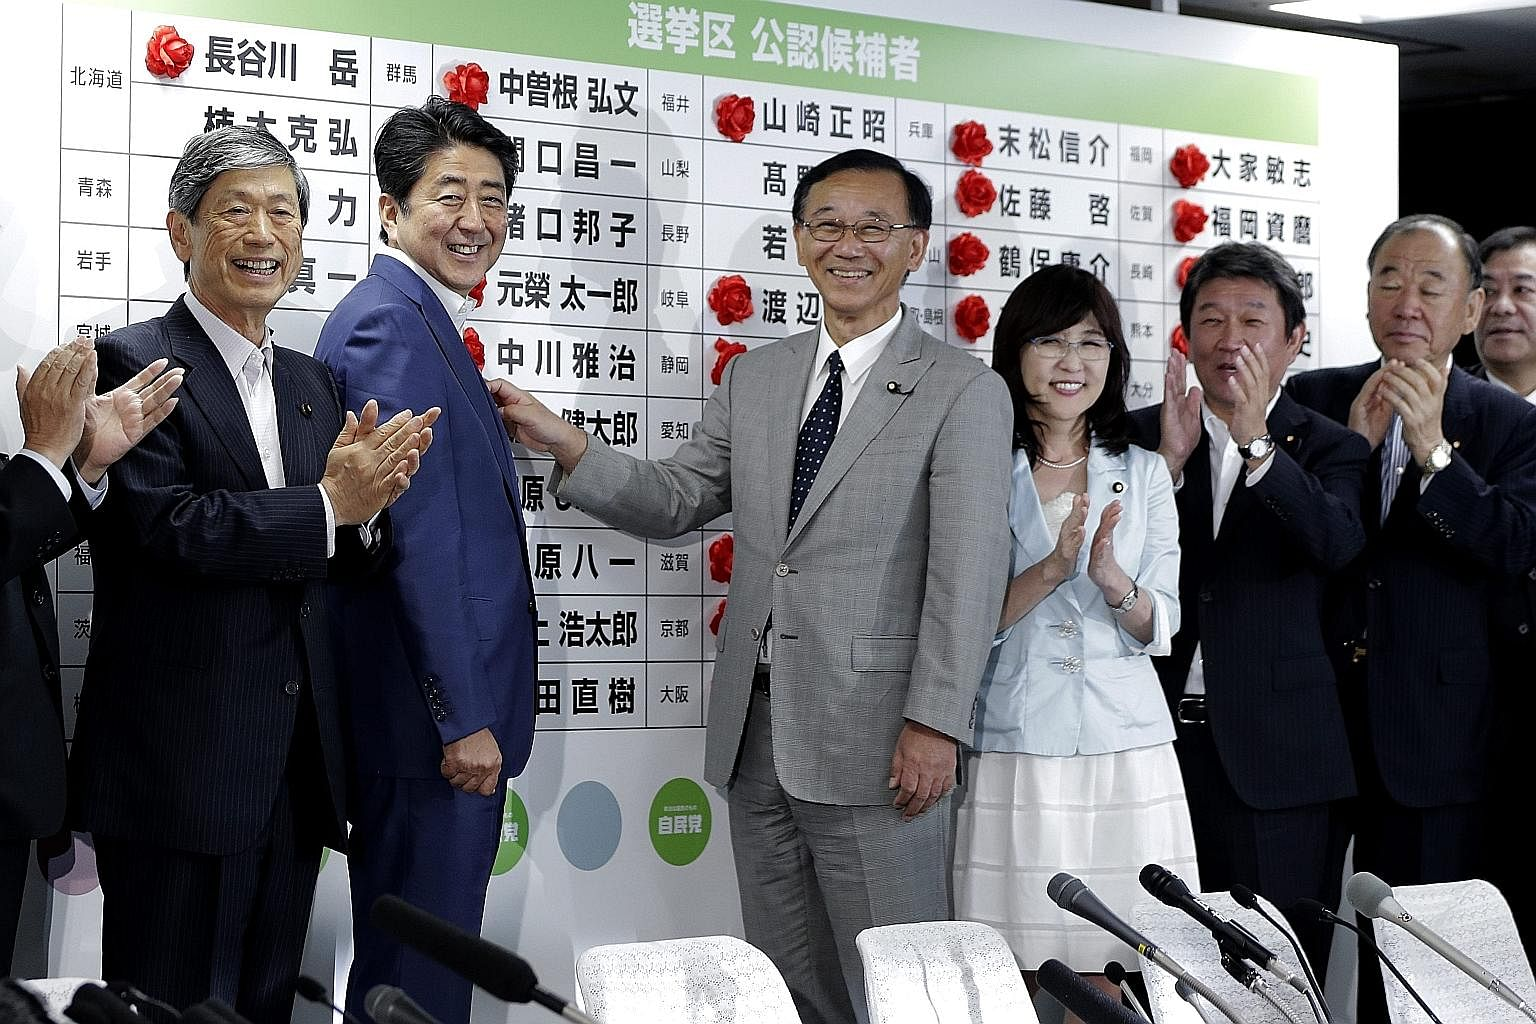 Japanese Prime Minister Shinzo Abe (second from left) celebrating with LDP members on Sunday at the party's headquarters in Tokyo after the Upper House election win. LDP and coalition partner Komeito now hold 146 of the 242 seats in the Upper House.